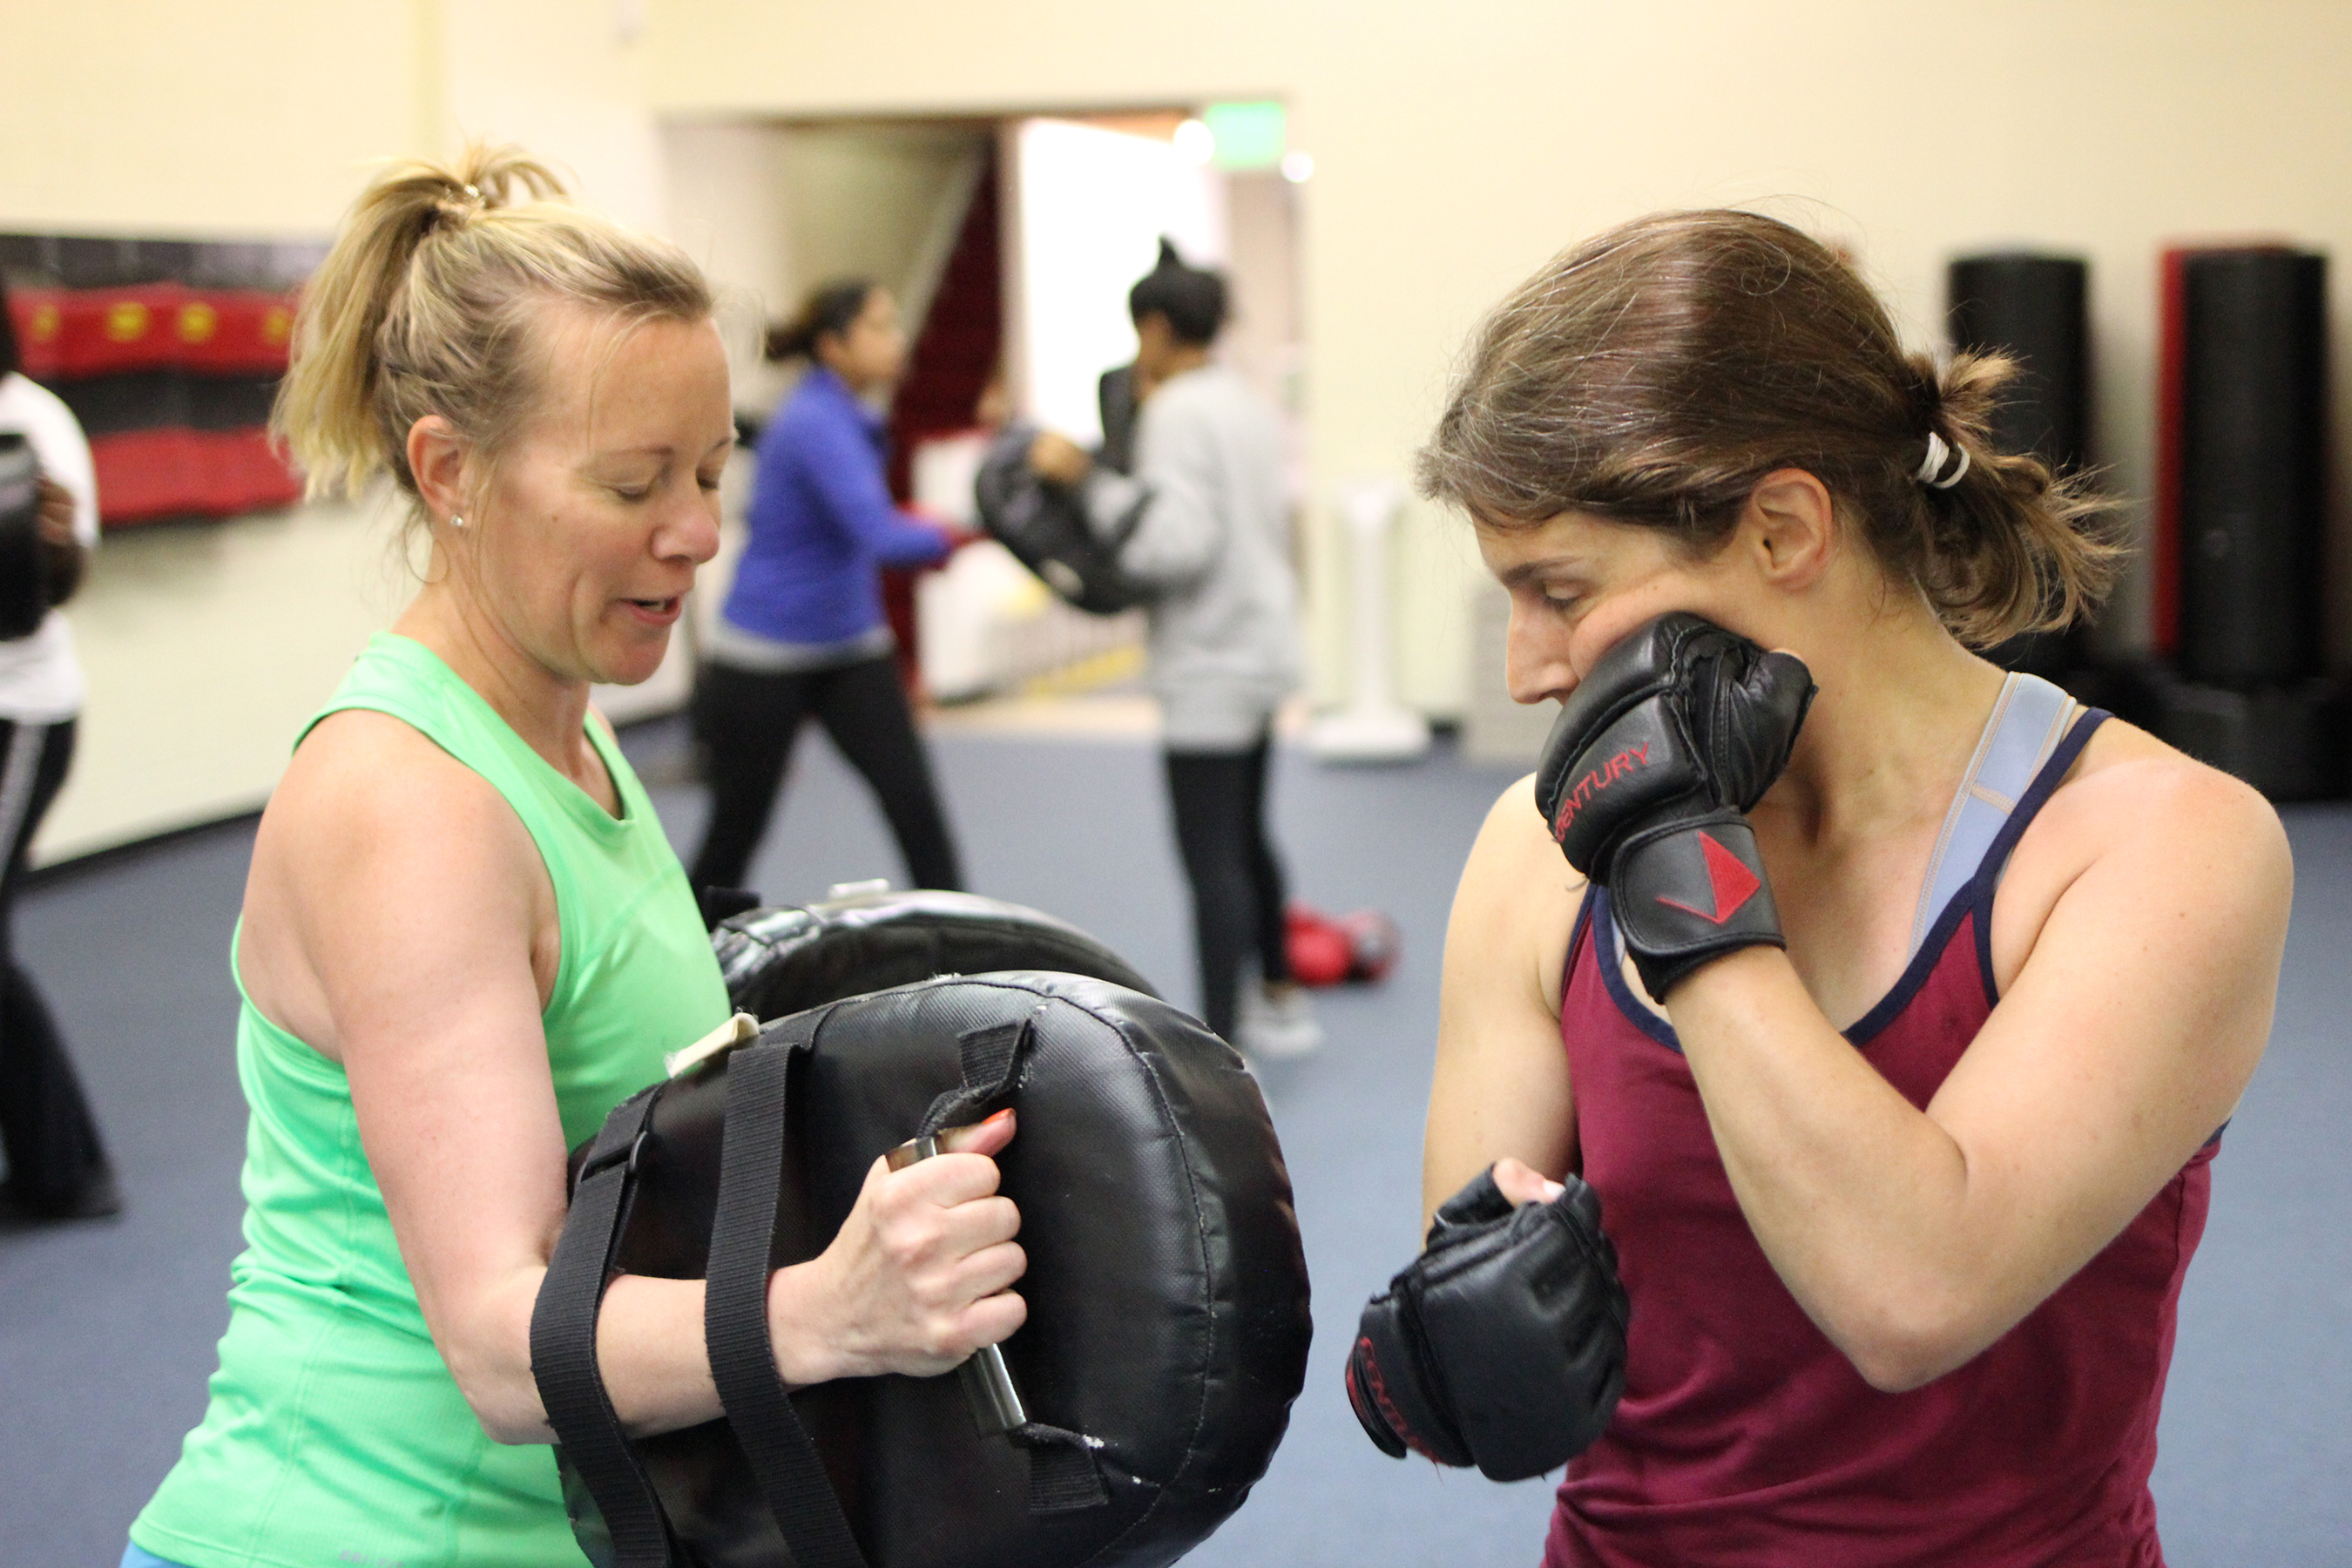 Kickboxing Fitness Classes Are Offered At Baltimore